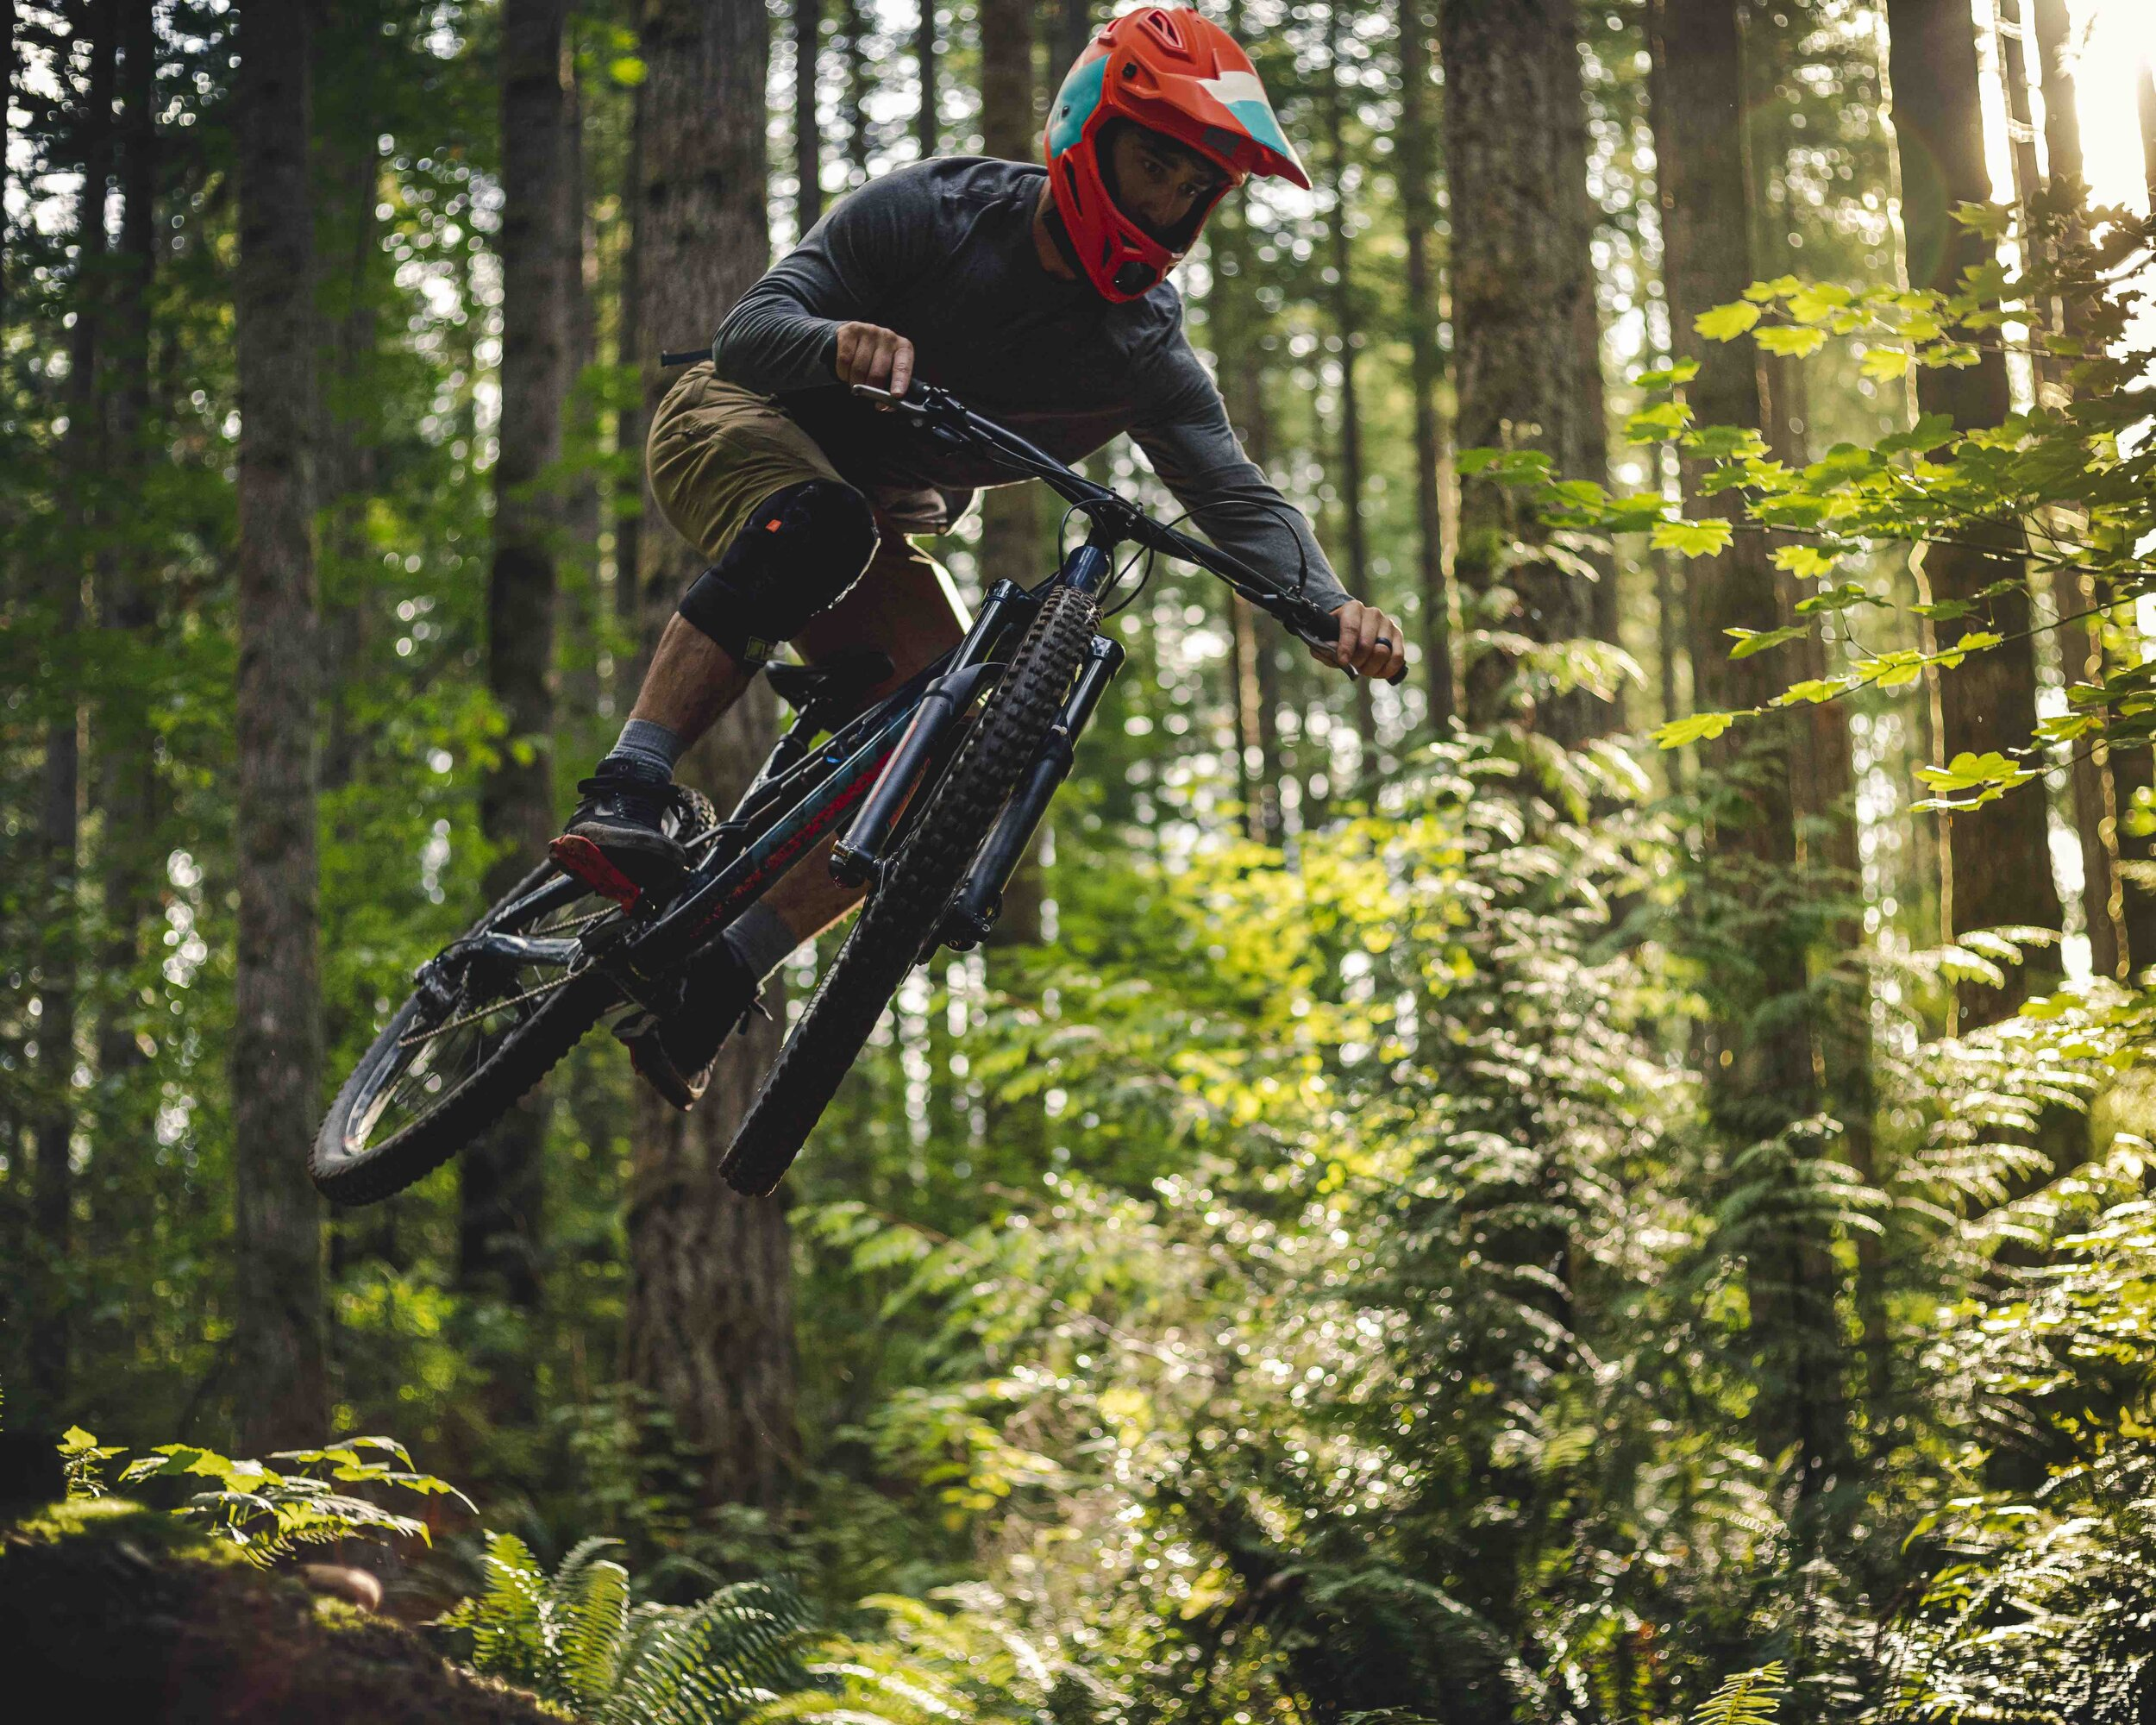 Intense_Mountain_Bike_Riding_Catching_Air_on_Forest_Trail.jpeg